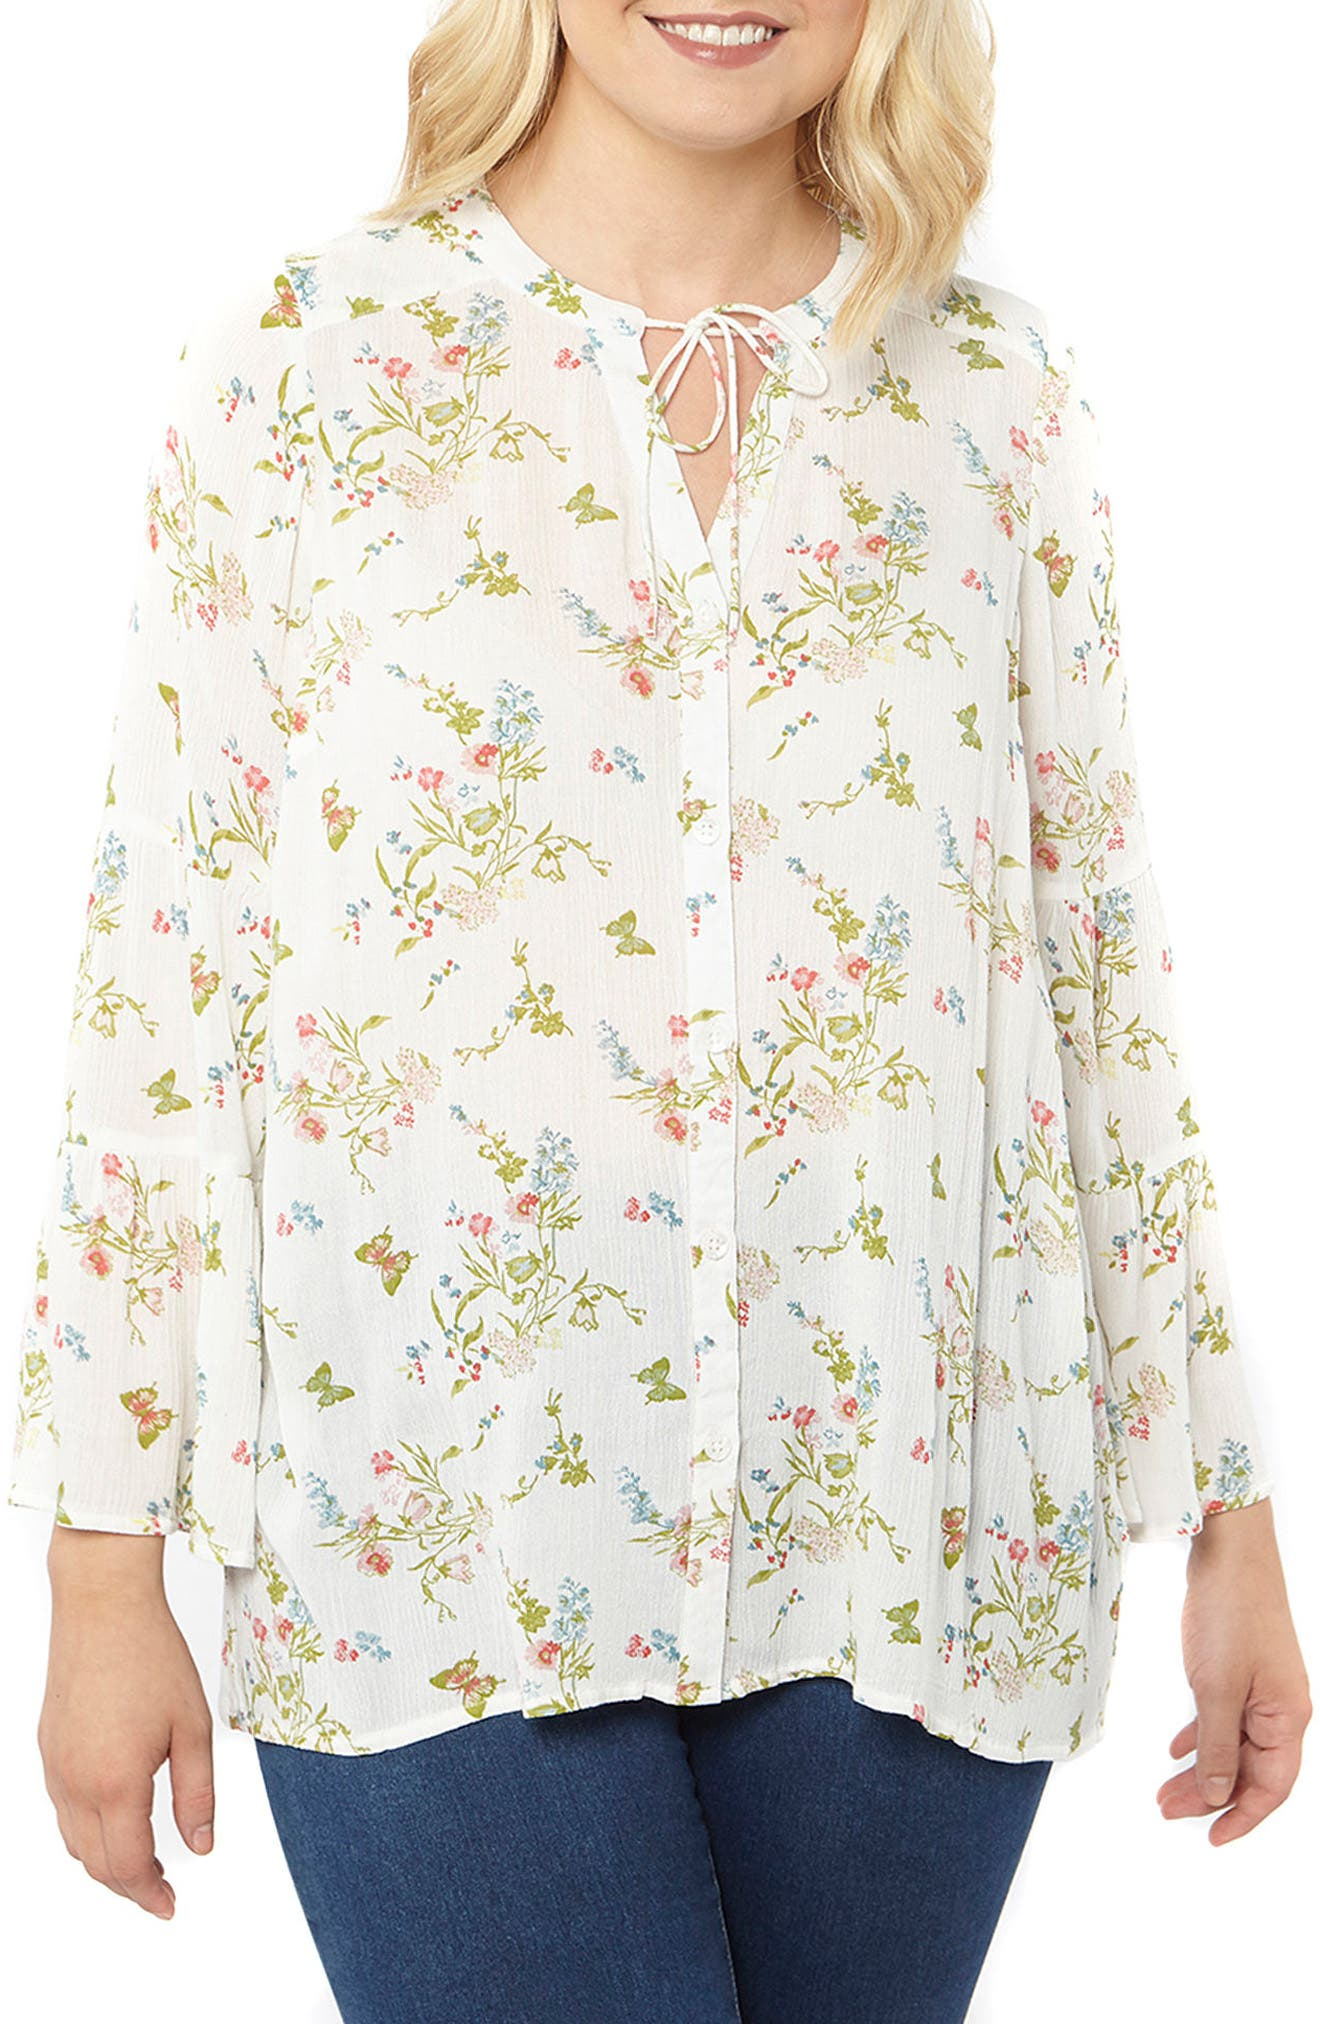 Evans Bell Sleeve Floral Blouse (Plus Size)